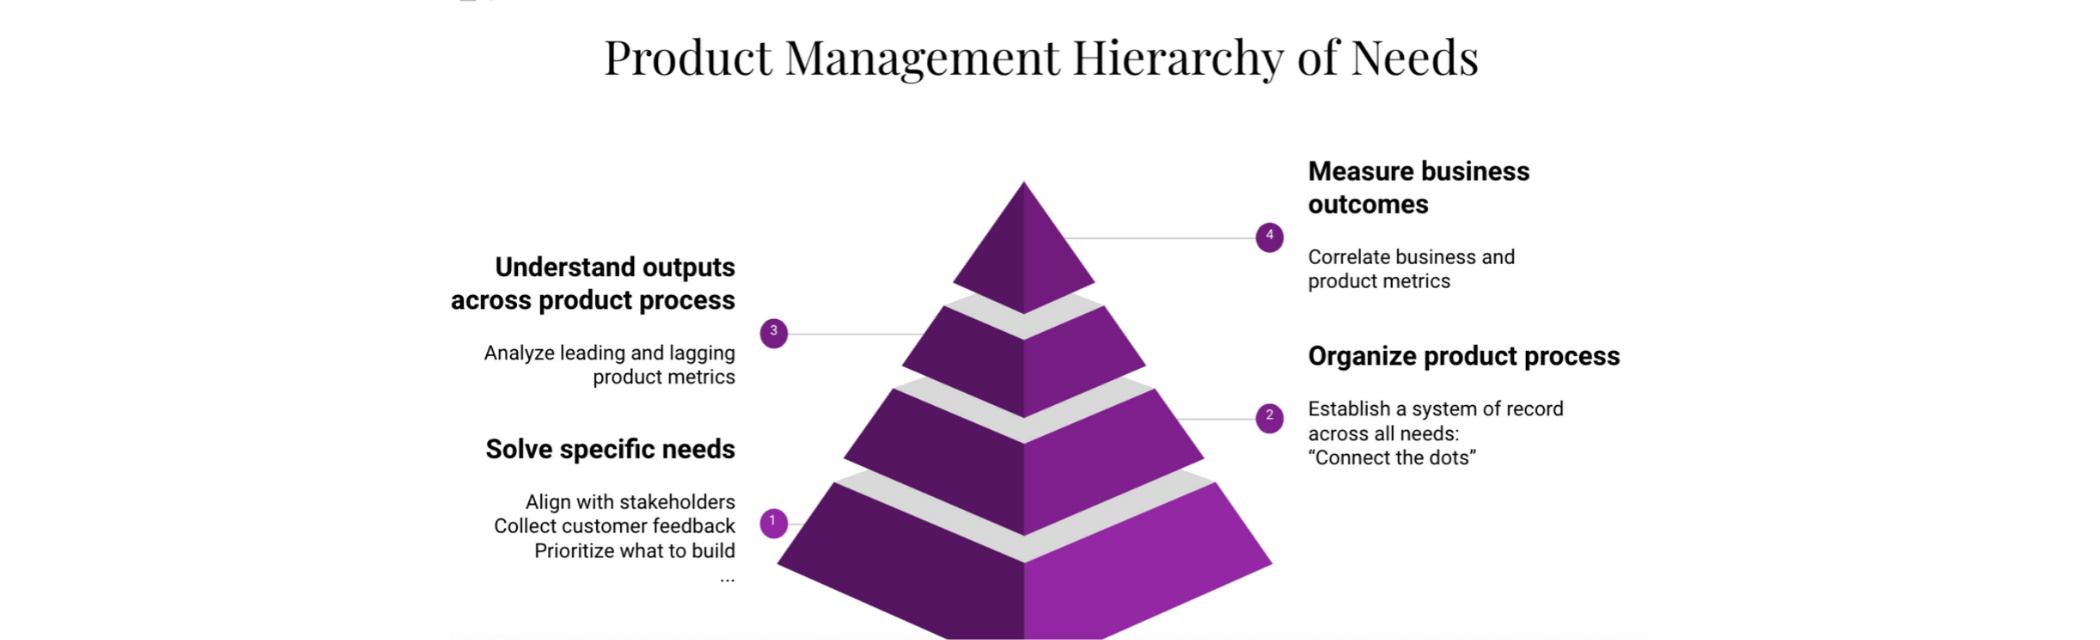 Applying Maslow's Hierarchy of Needs to product management